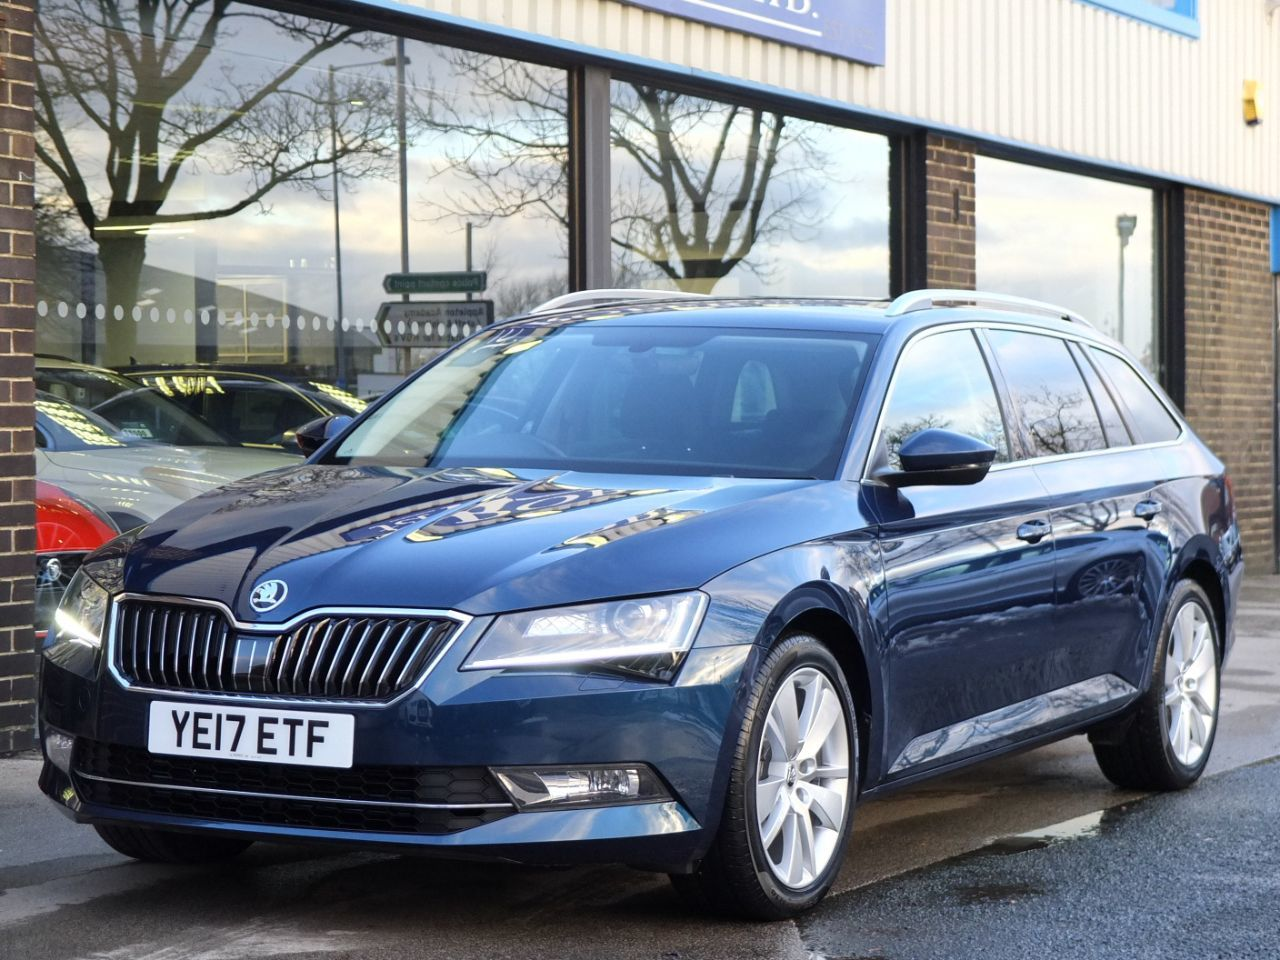 Skoda Superb Estate 1.4 TSI ACT 150ps SE L Executive DSG Auto Estate Petrol Petrol Blue MetallicSkoda Superb Estate 1.4 TSI ACT 150ps SE L Executive DSG Auto Estate Petrol Petrol Blue Metallic at fa Roper Ltd Bradford